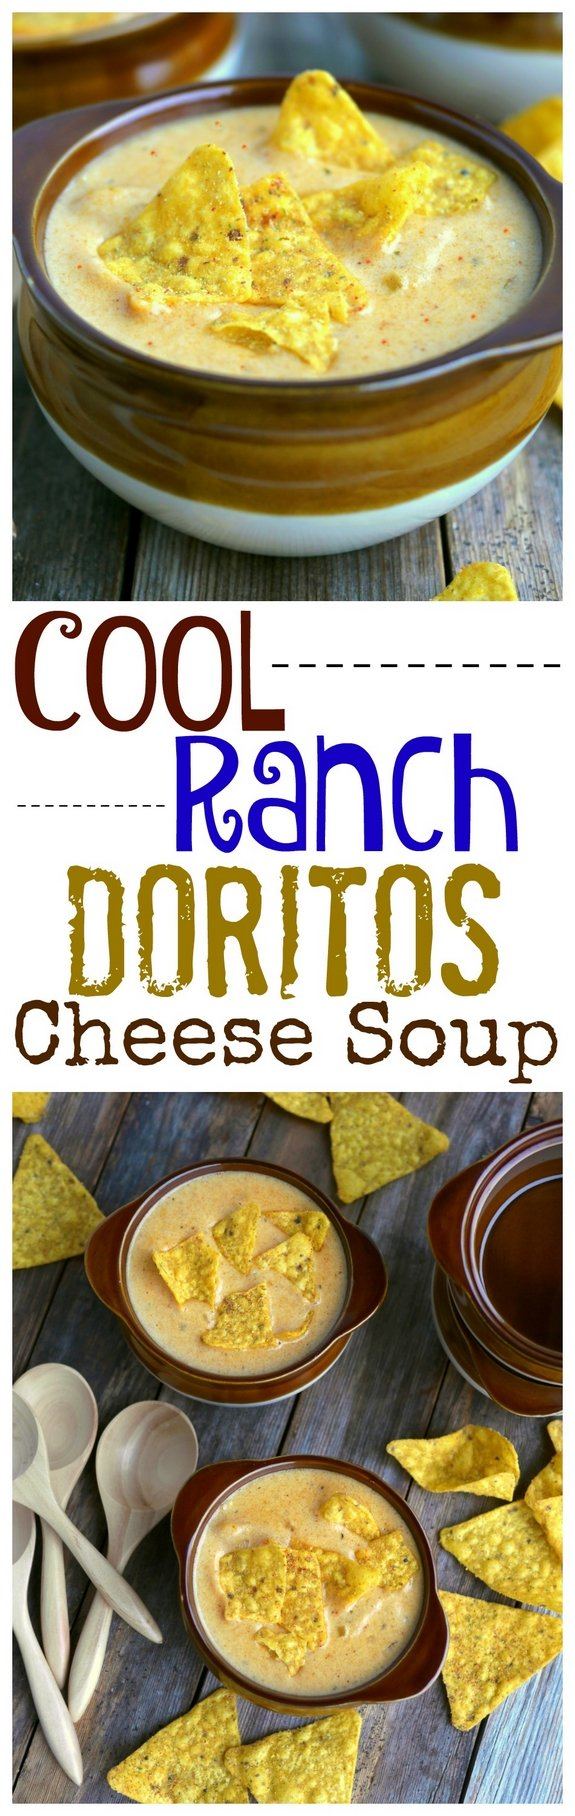 Cool Ranch Doritos Cheese Soup is going to knock your socks off